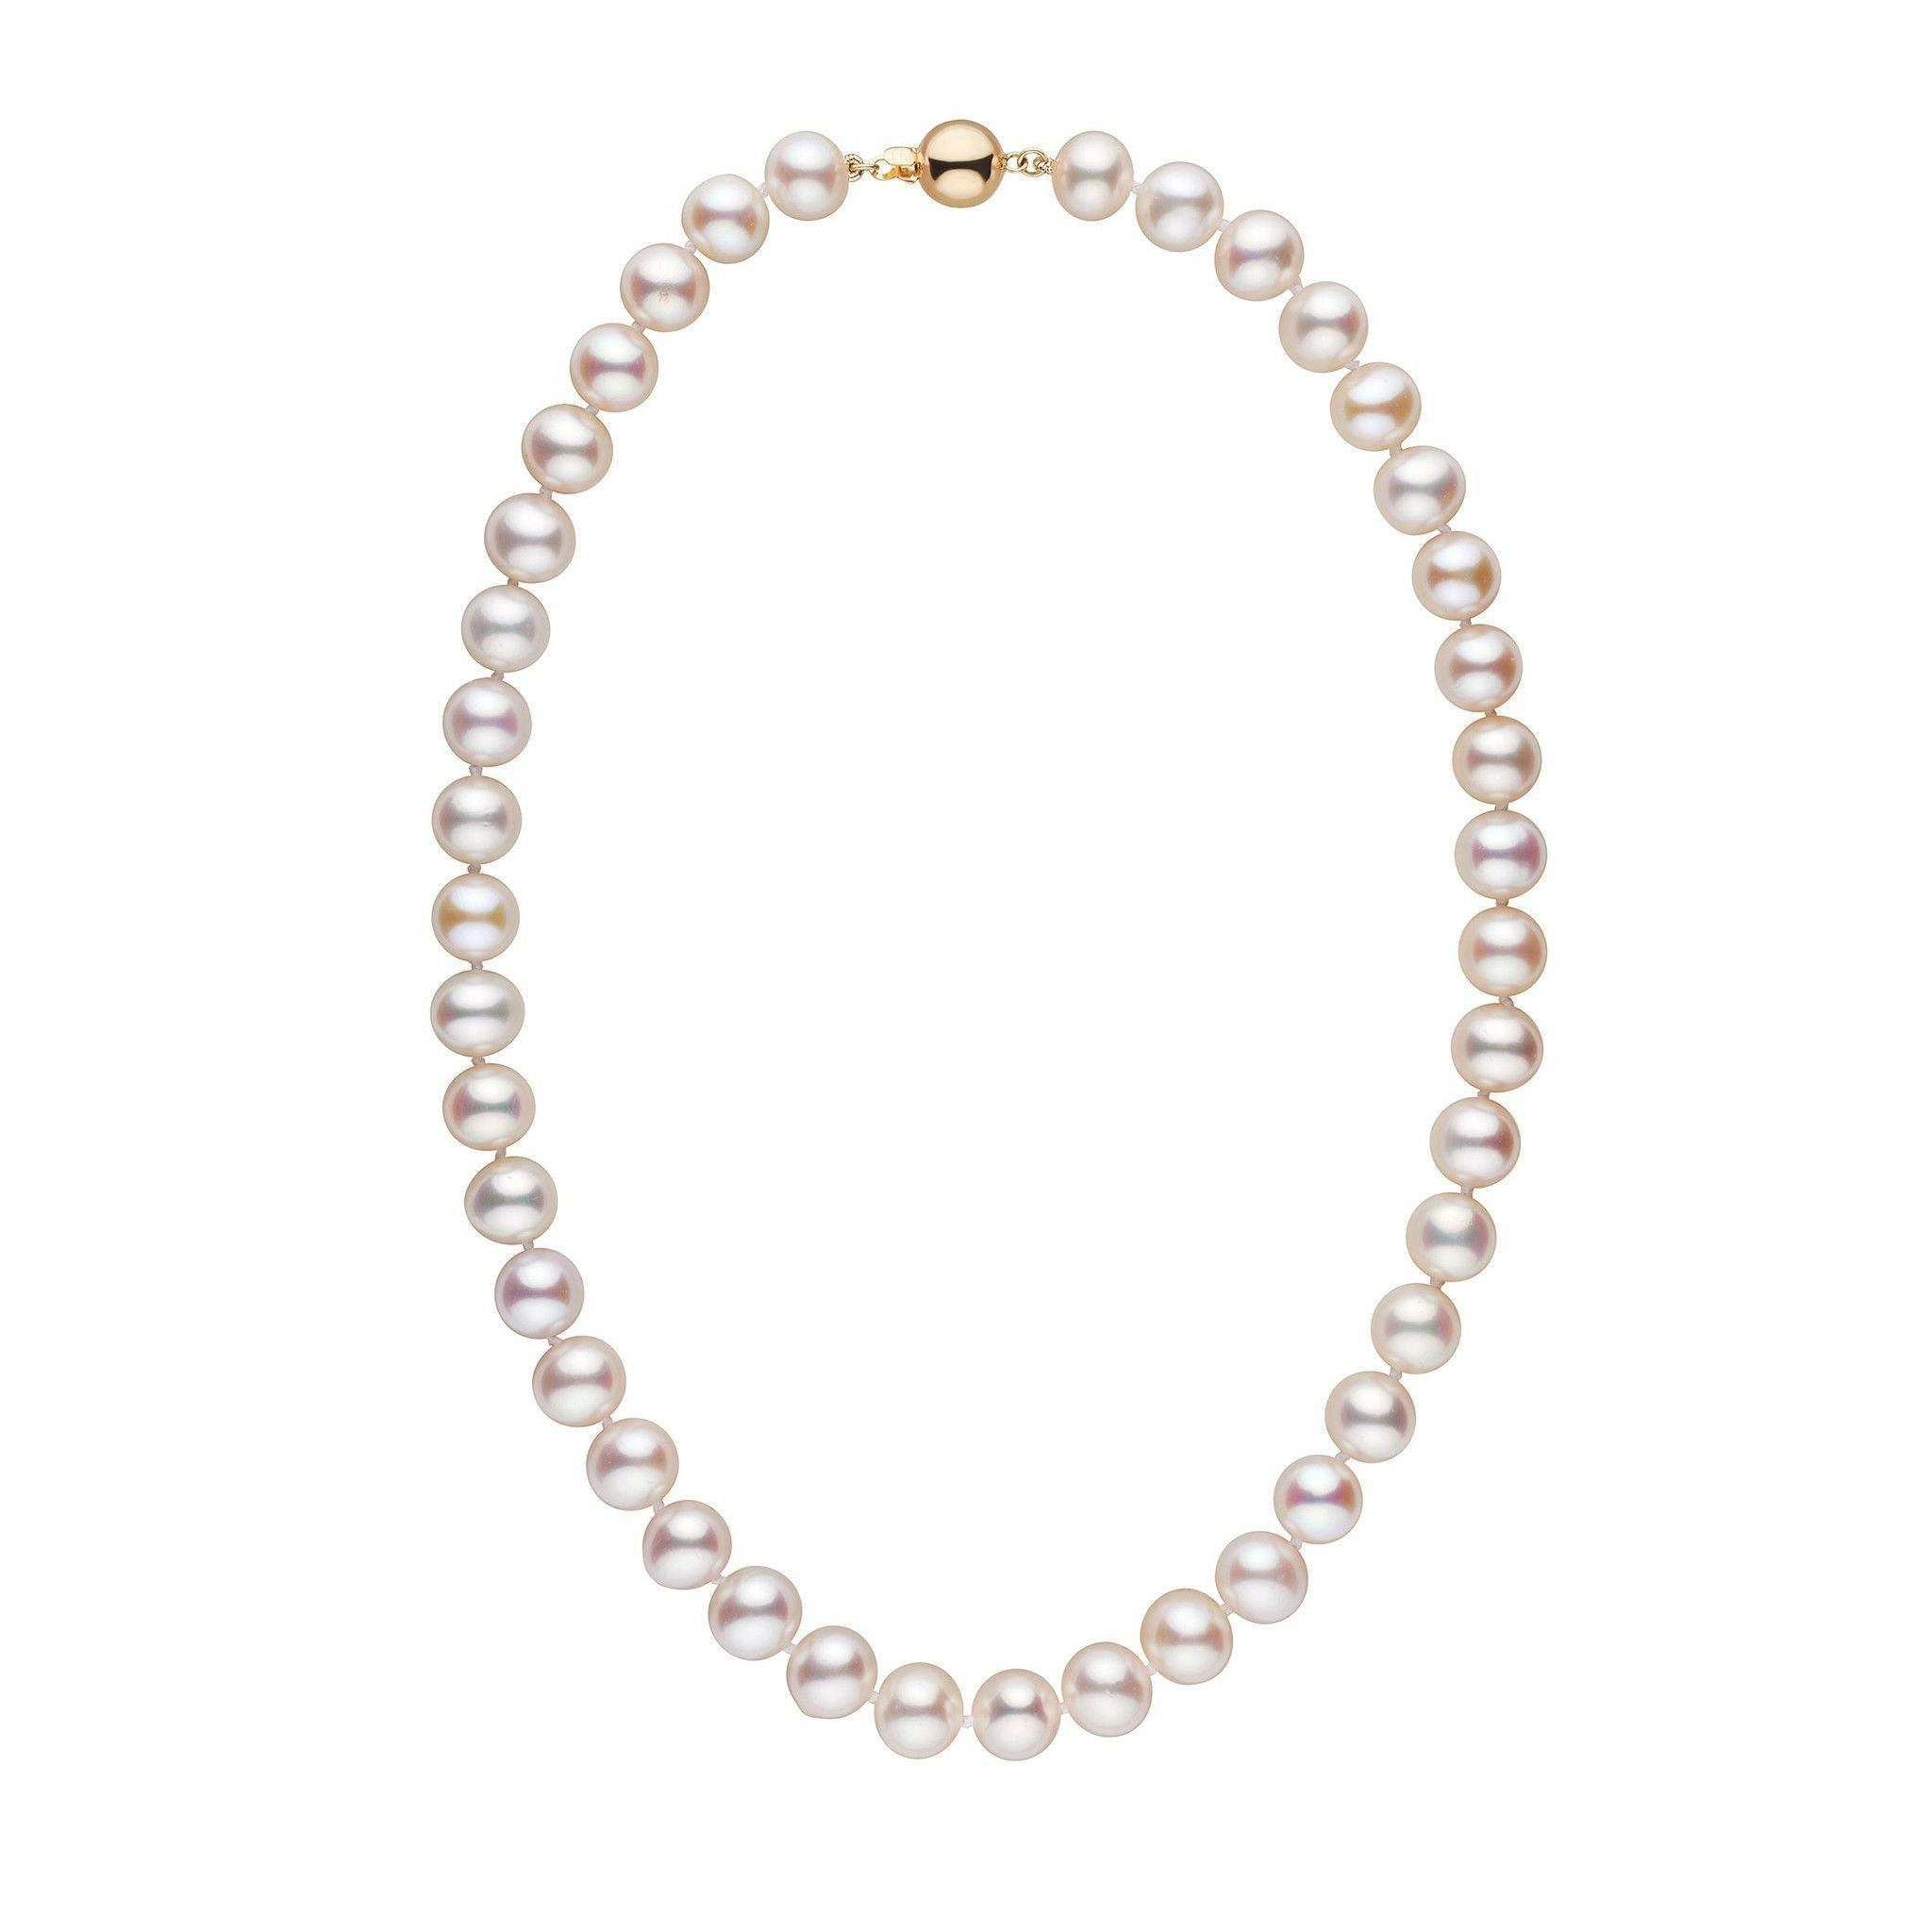 17.5-inch 10.5-11.5 mm AAA White Freshwater Pearl Necklace